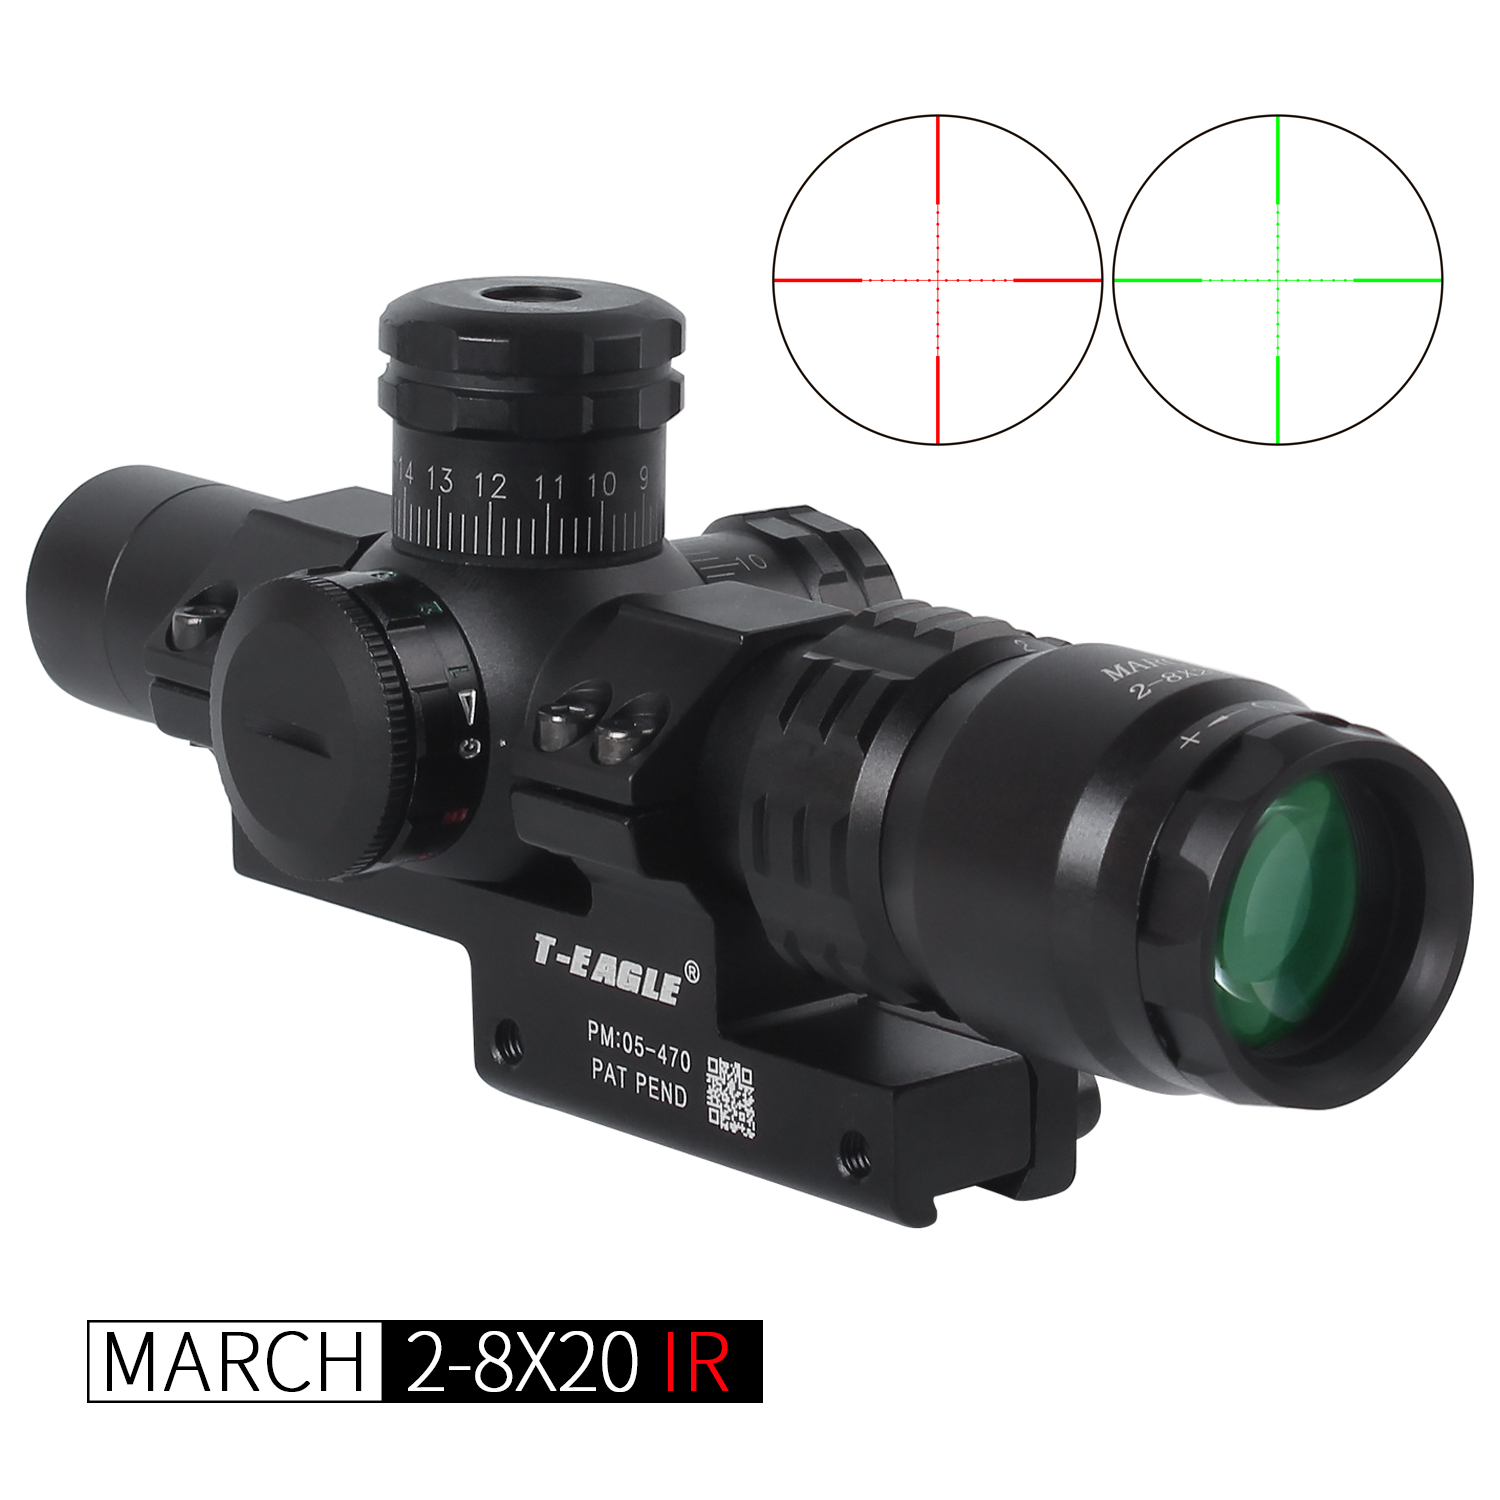 Hot New March 2-8x20 IR Tactical RiflesScope 20mm Mount Optics Rifle Scopes Sight HD R/G Hunting Scopes Night Vision Scope